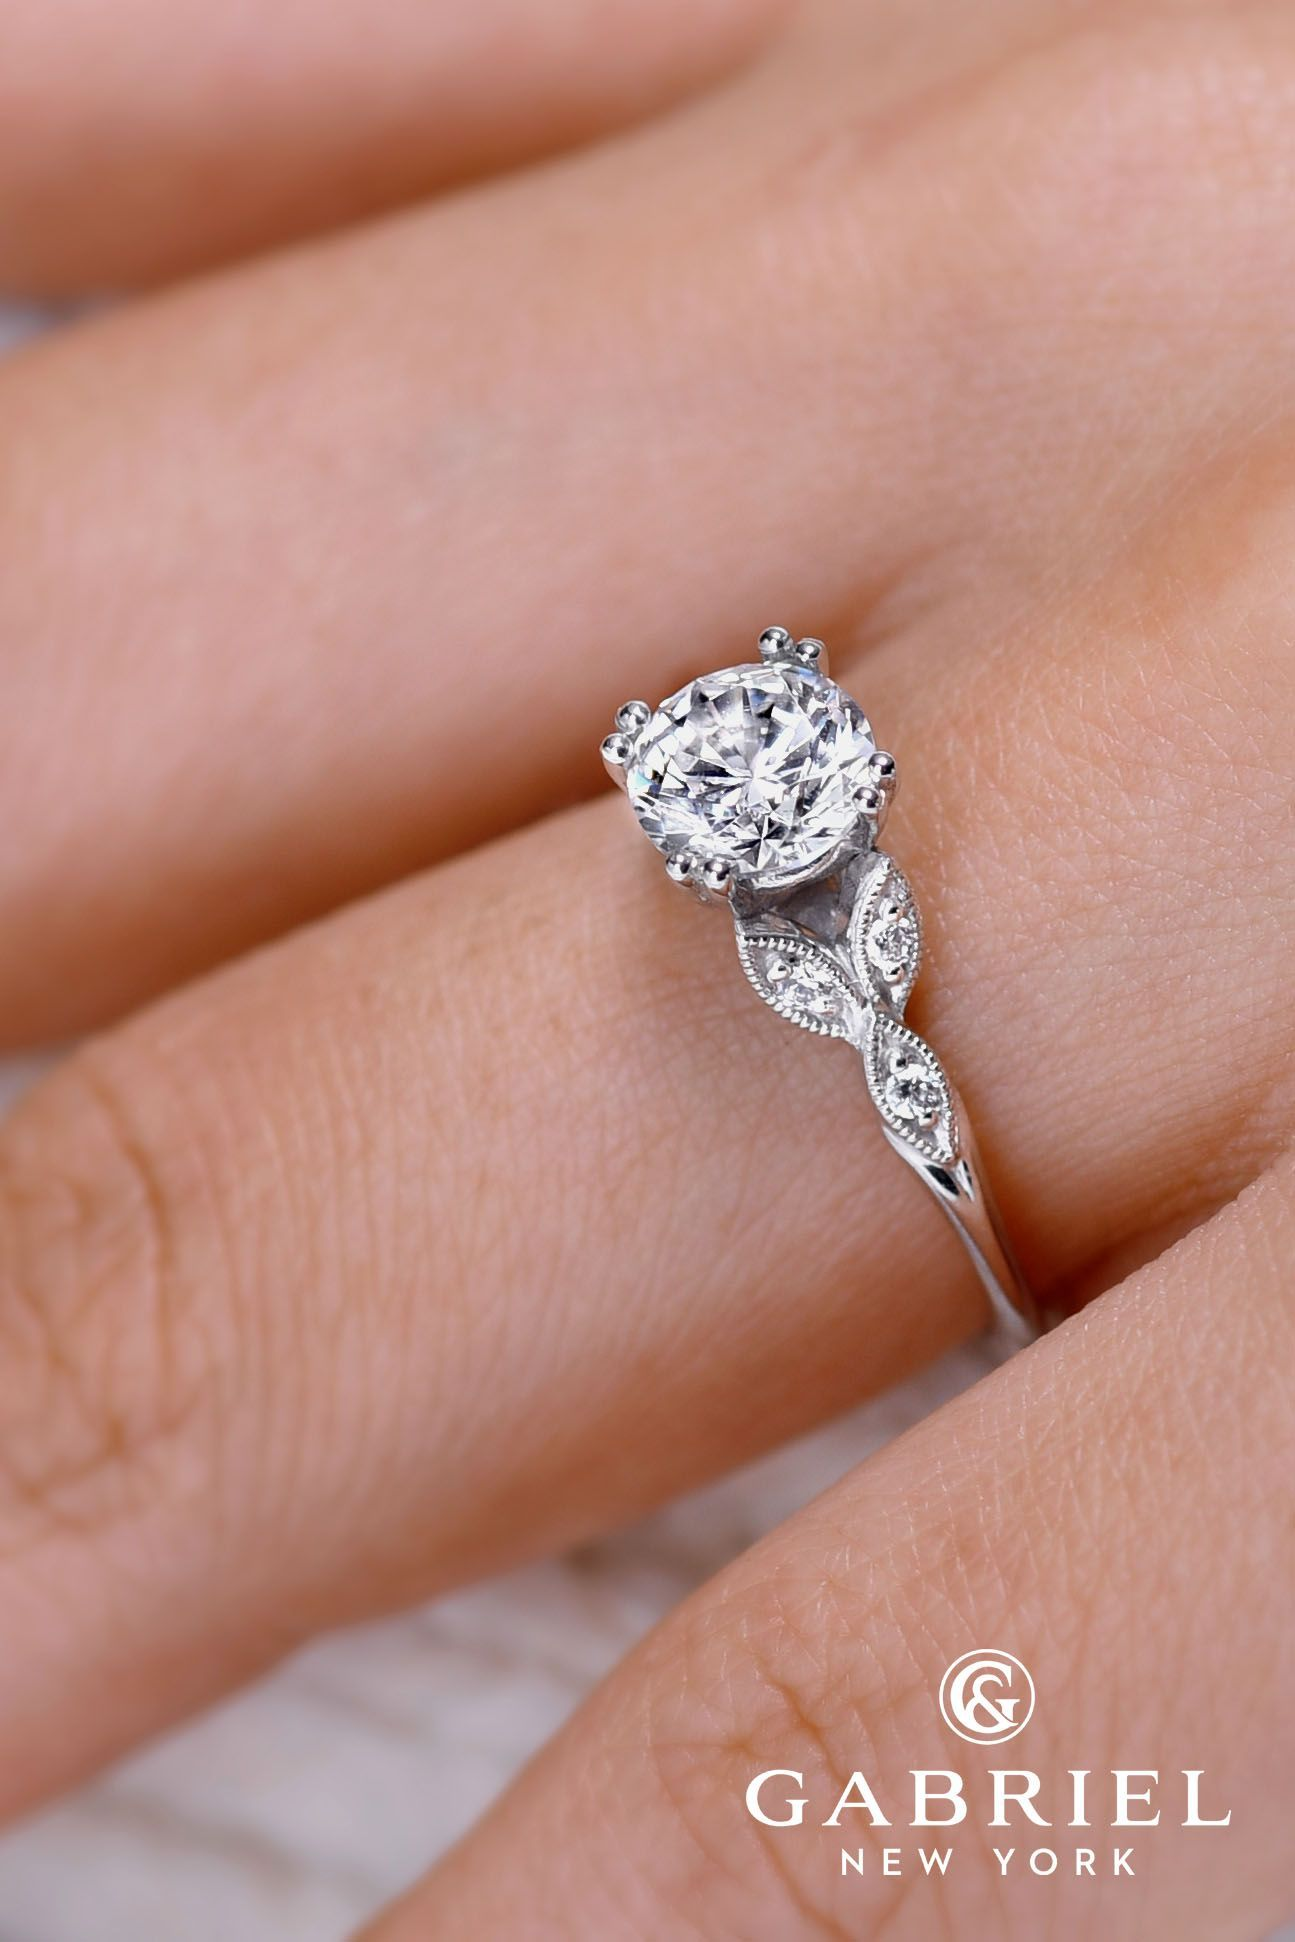 24 Gabriel & Co Engagement Rings Extraordinaire | Wedding "|1295|1942|?|False|42c25cd03443ea9a2b3e658bc87062d0|False|UNLIKELY|0.30456075072288513